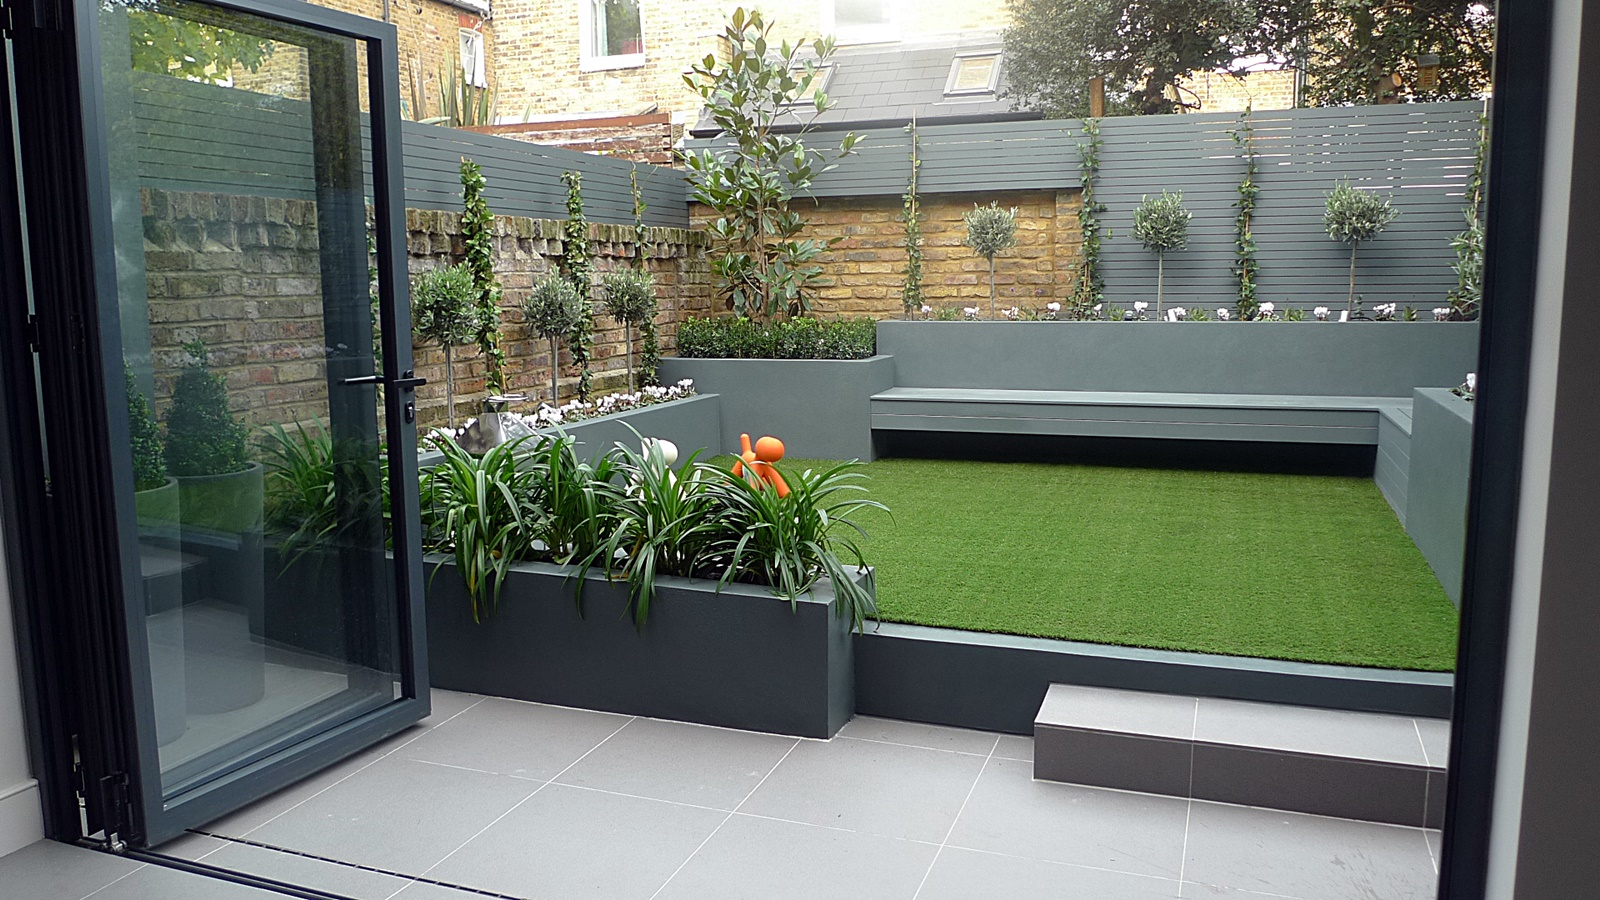 London garden design garden design - Garden ideas london ...